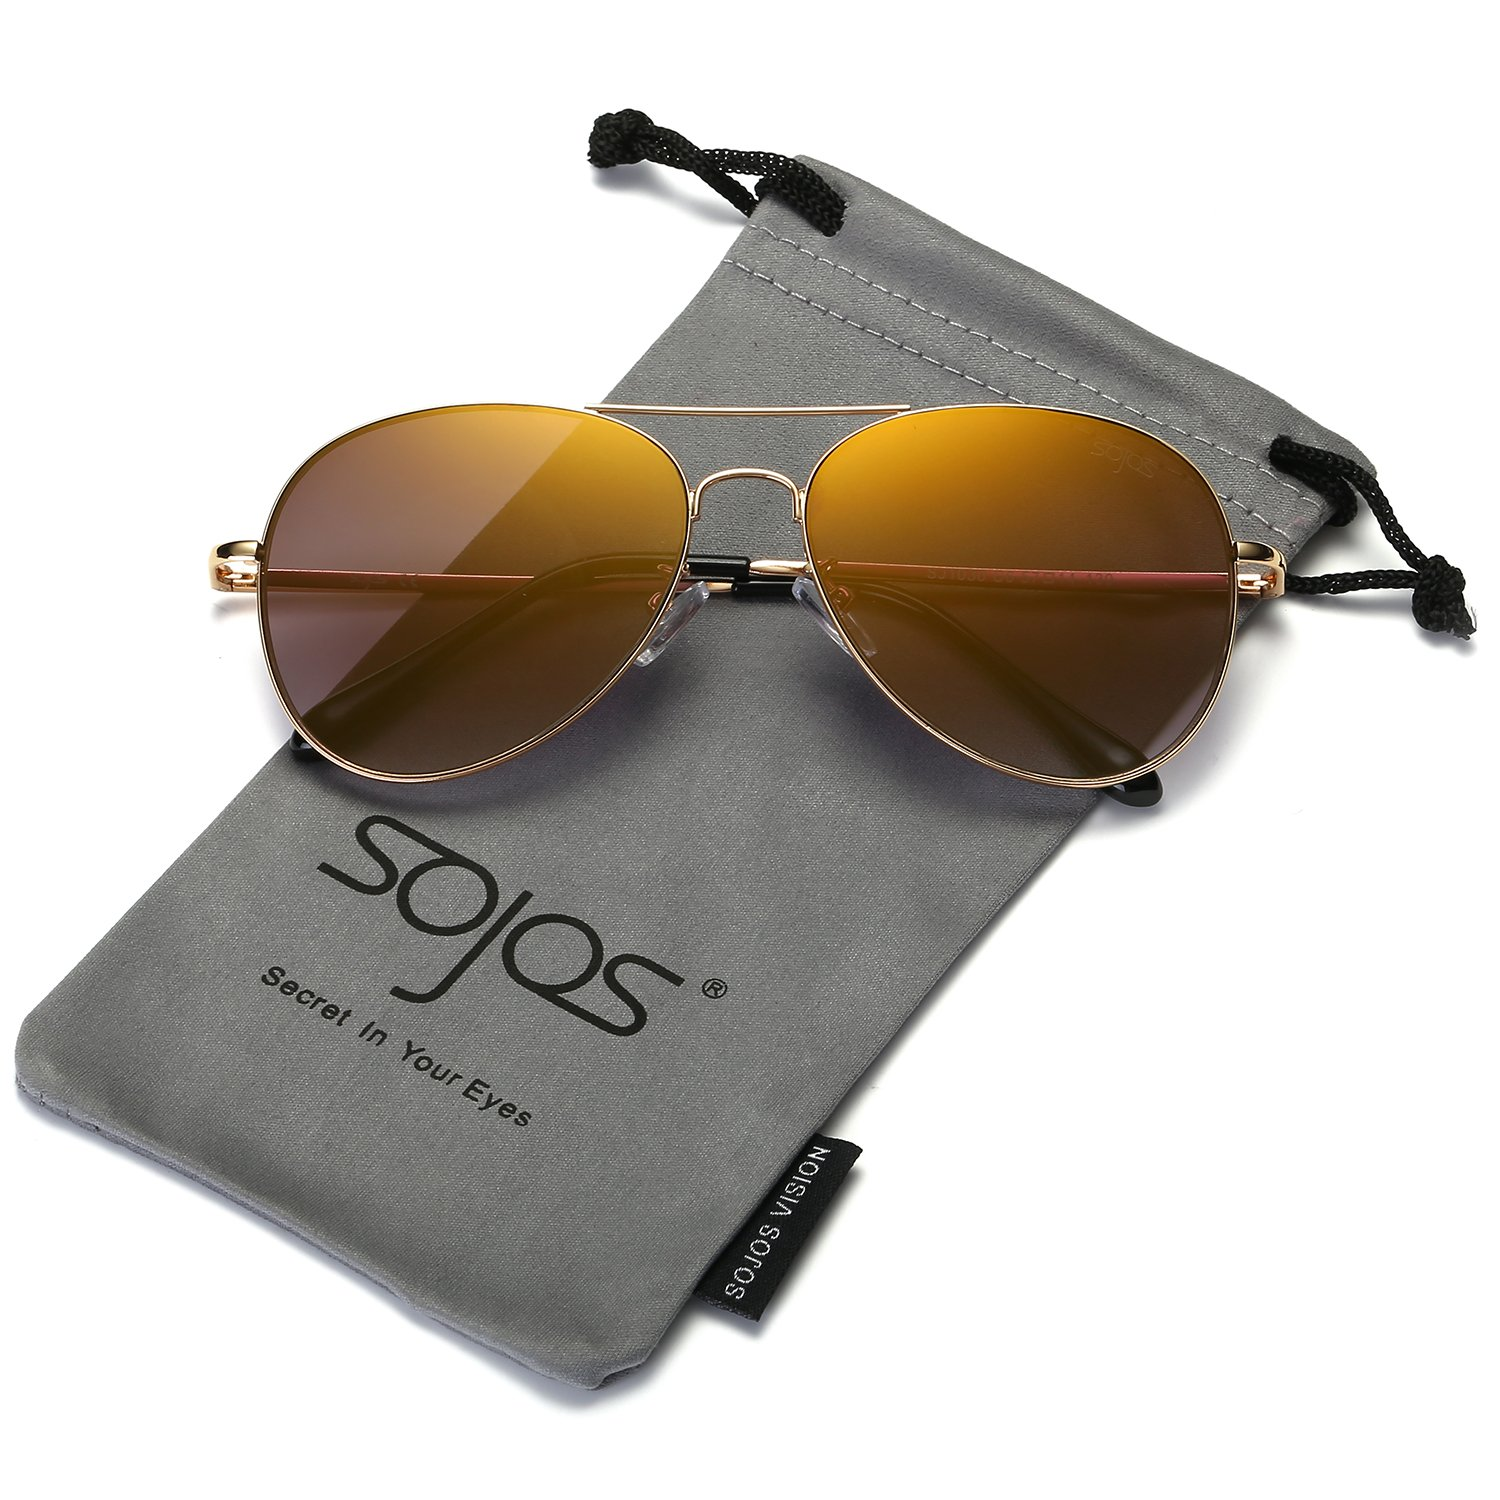 SOJOS Classic Aviator Mirrored Flat Lens Sunglasses Metal Frame with Spring Hinges SJ1030 SJ1030C1